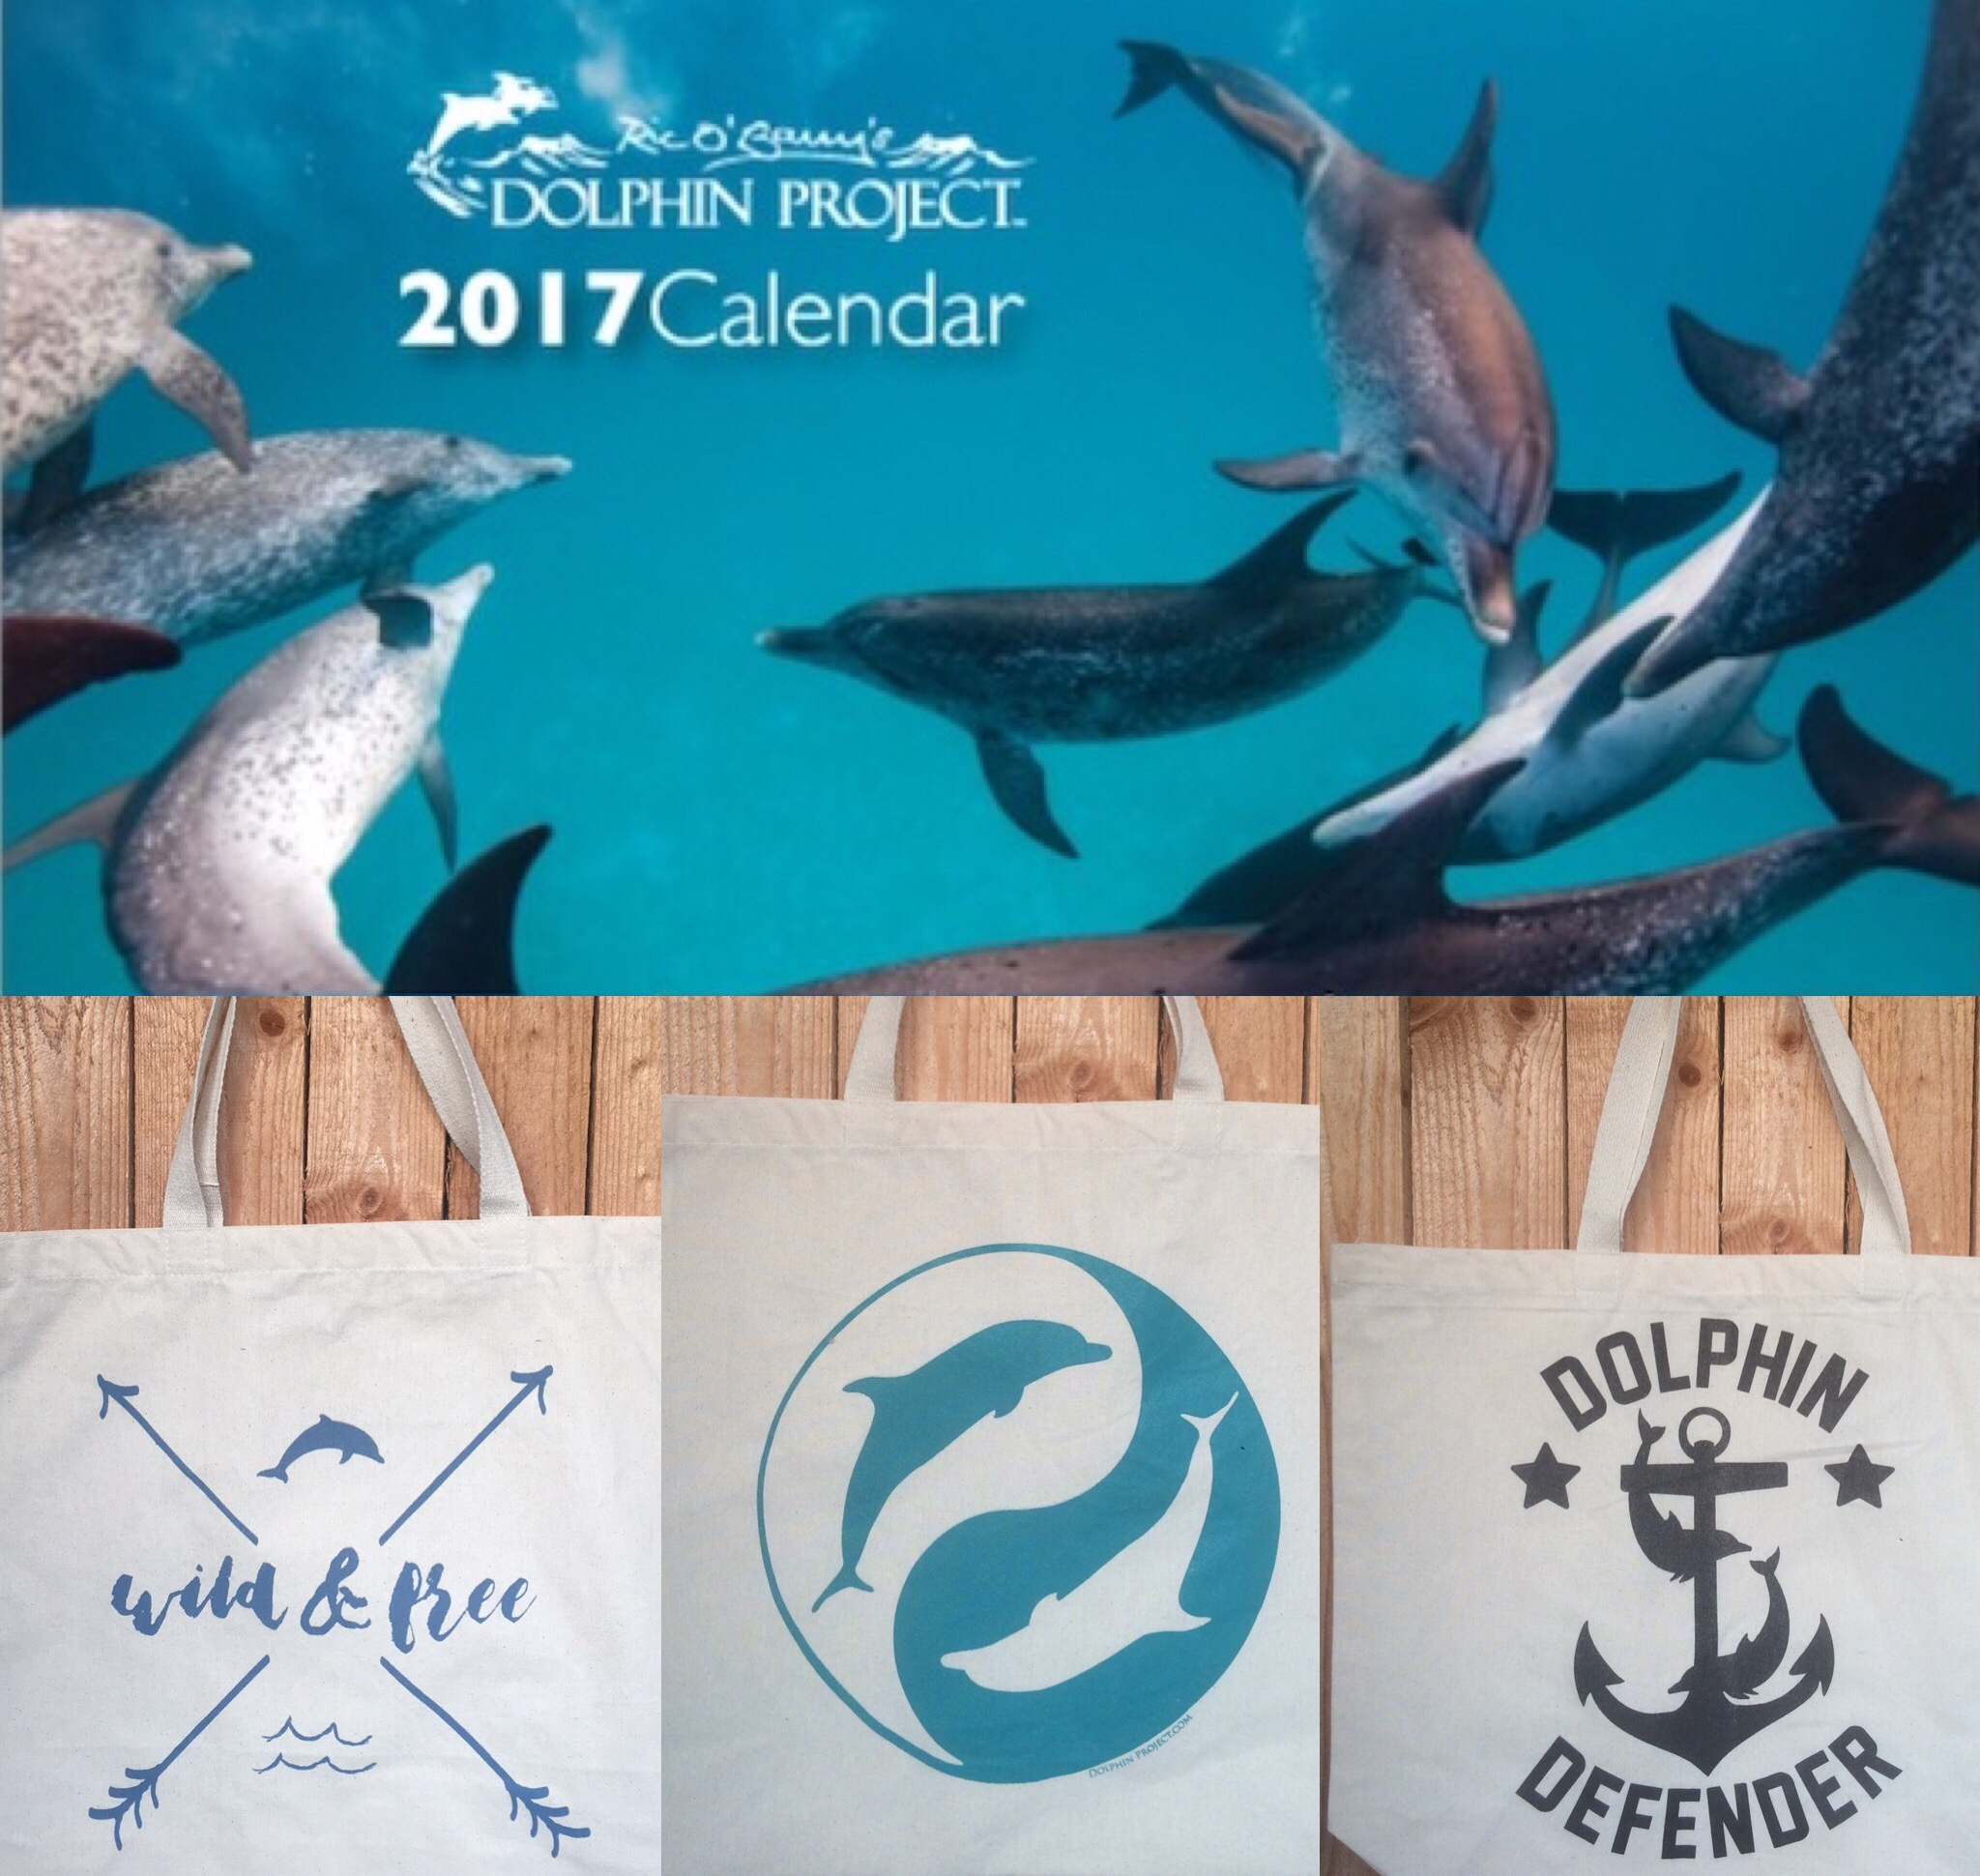 Dolphin Project's birthday special